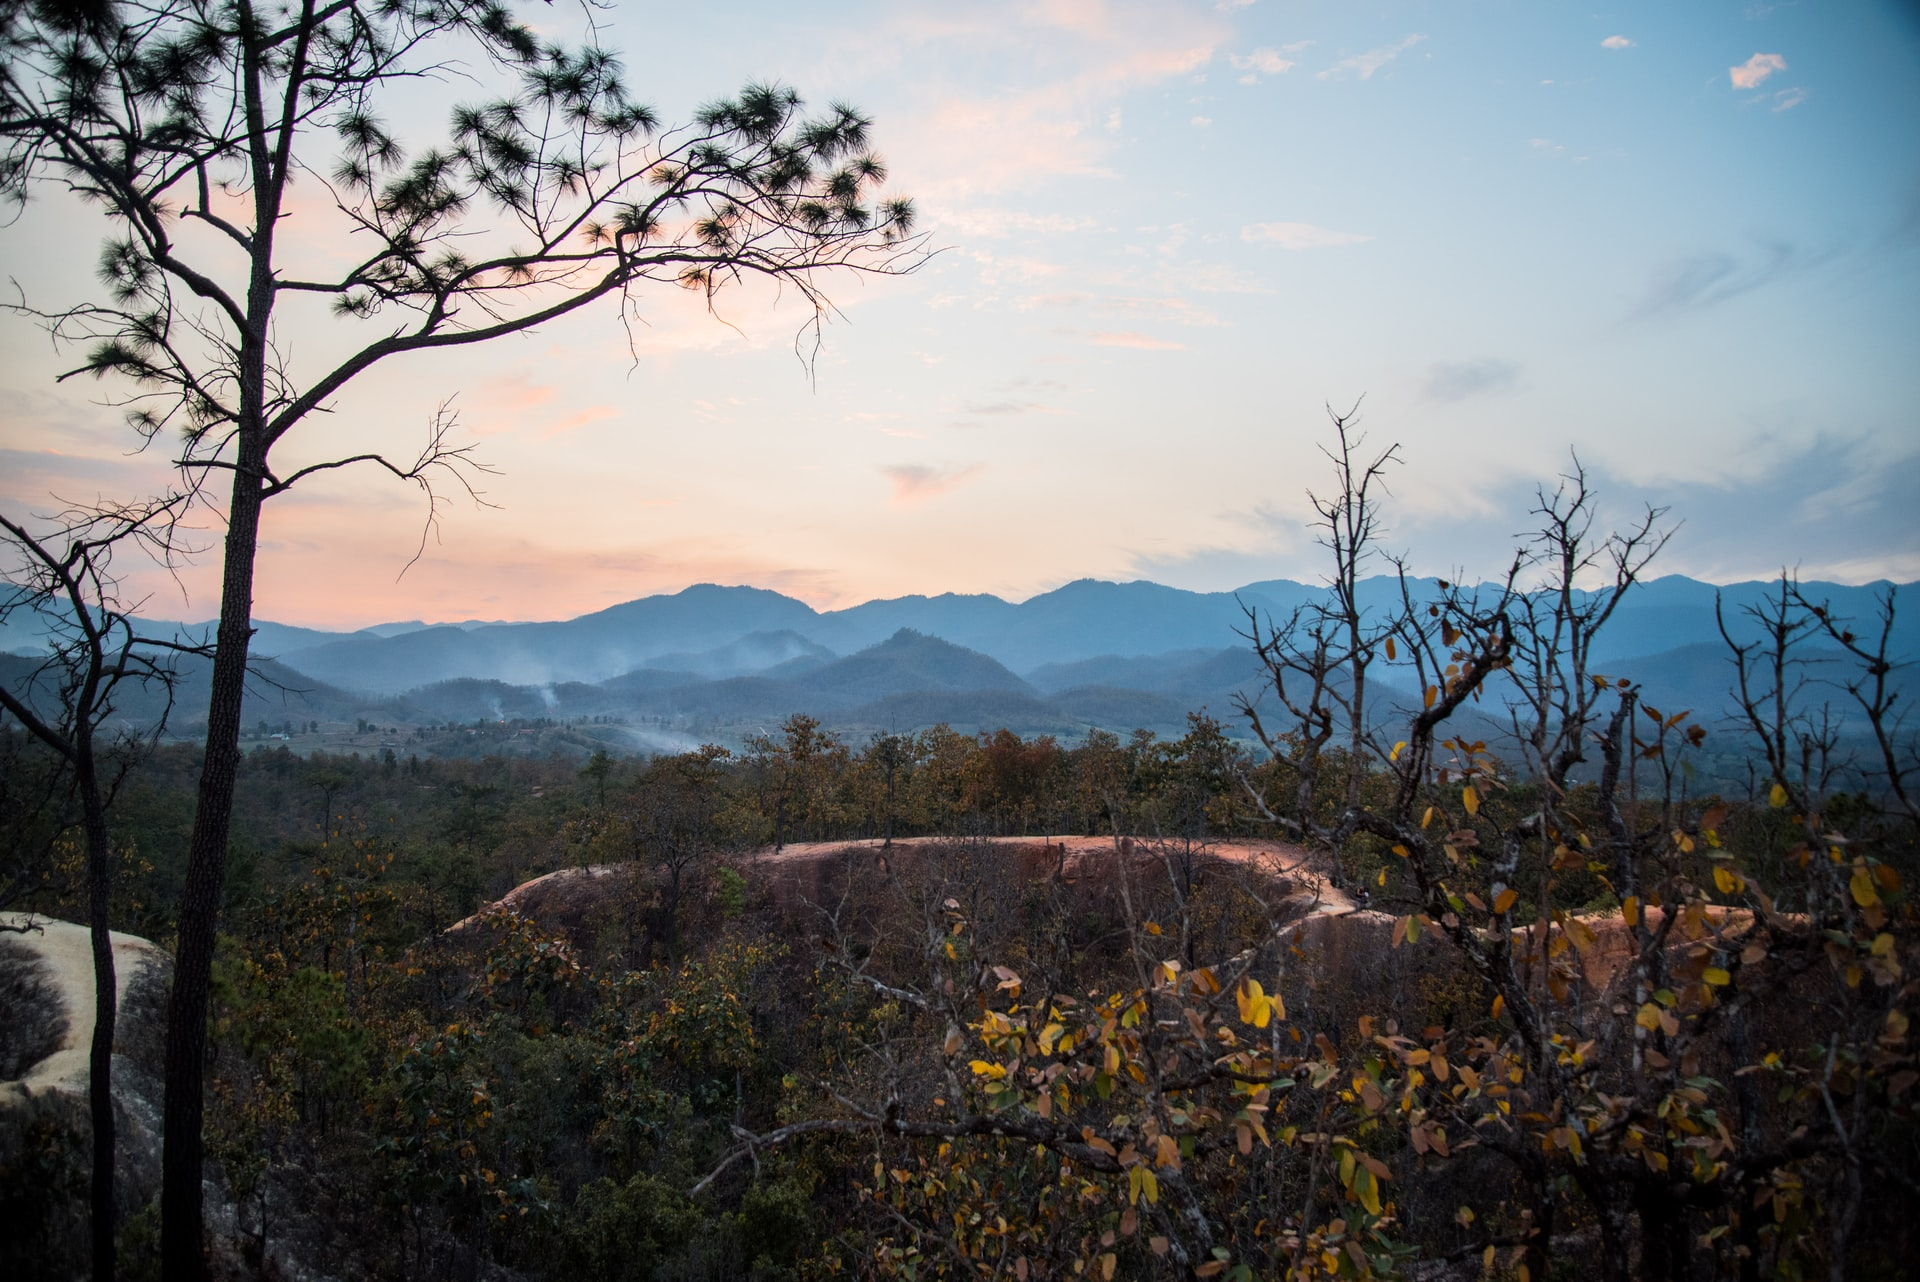 Sunset over Pai Canyon, Pai, Thailand